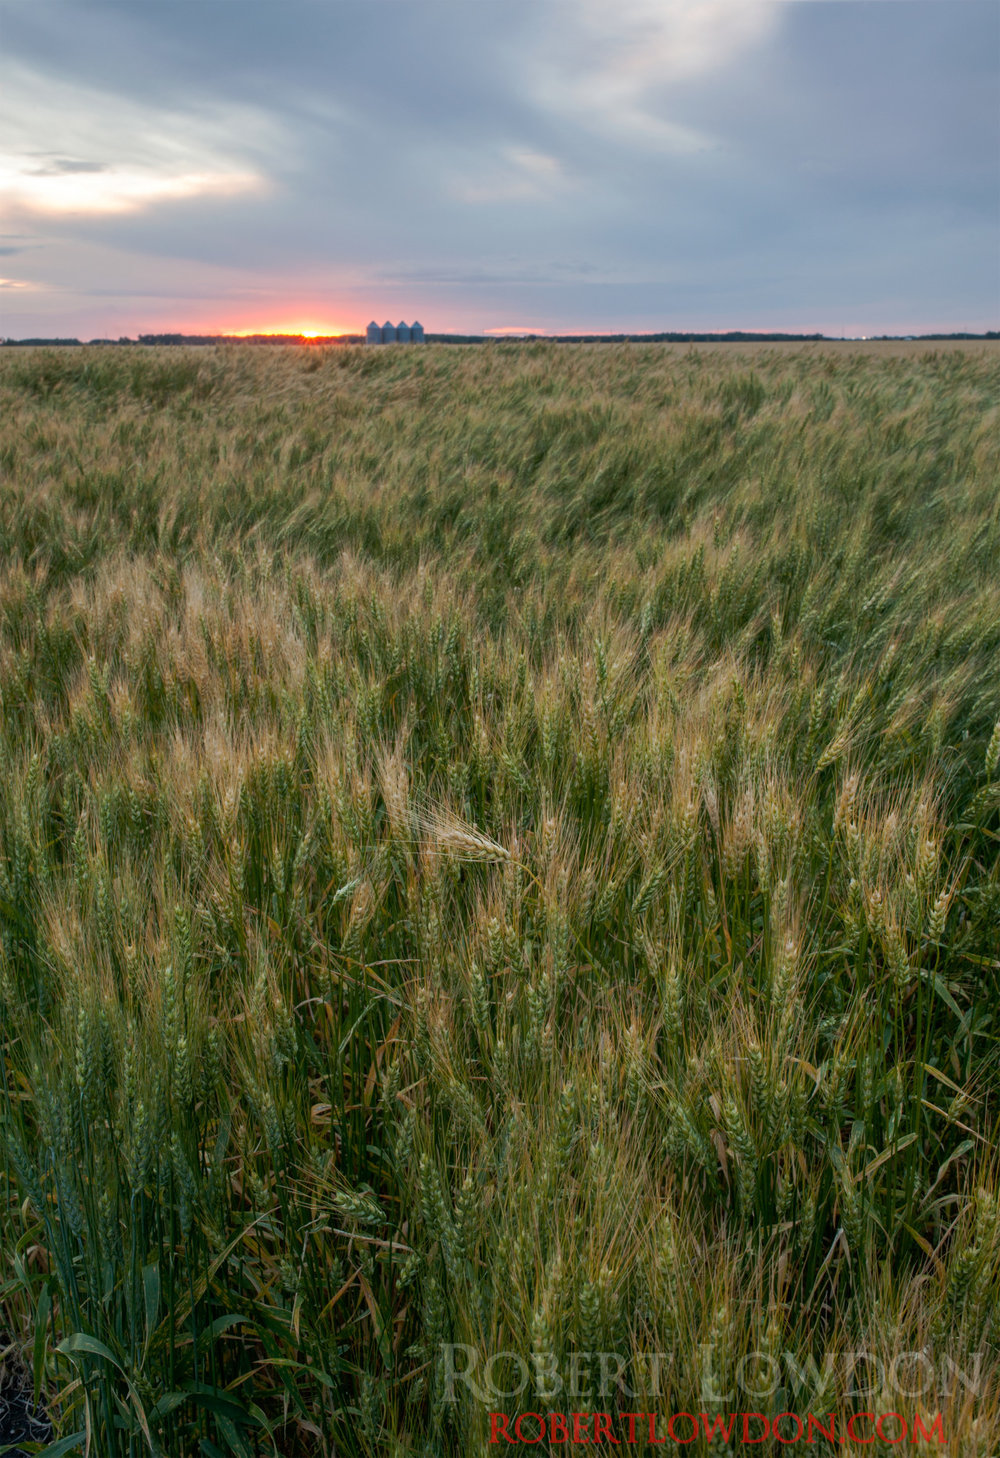 Wheats in the Wind By: Robert Lowdon Photograph of wheat flowing in the wind Southern Manitoba